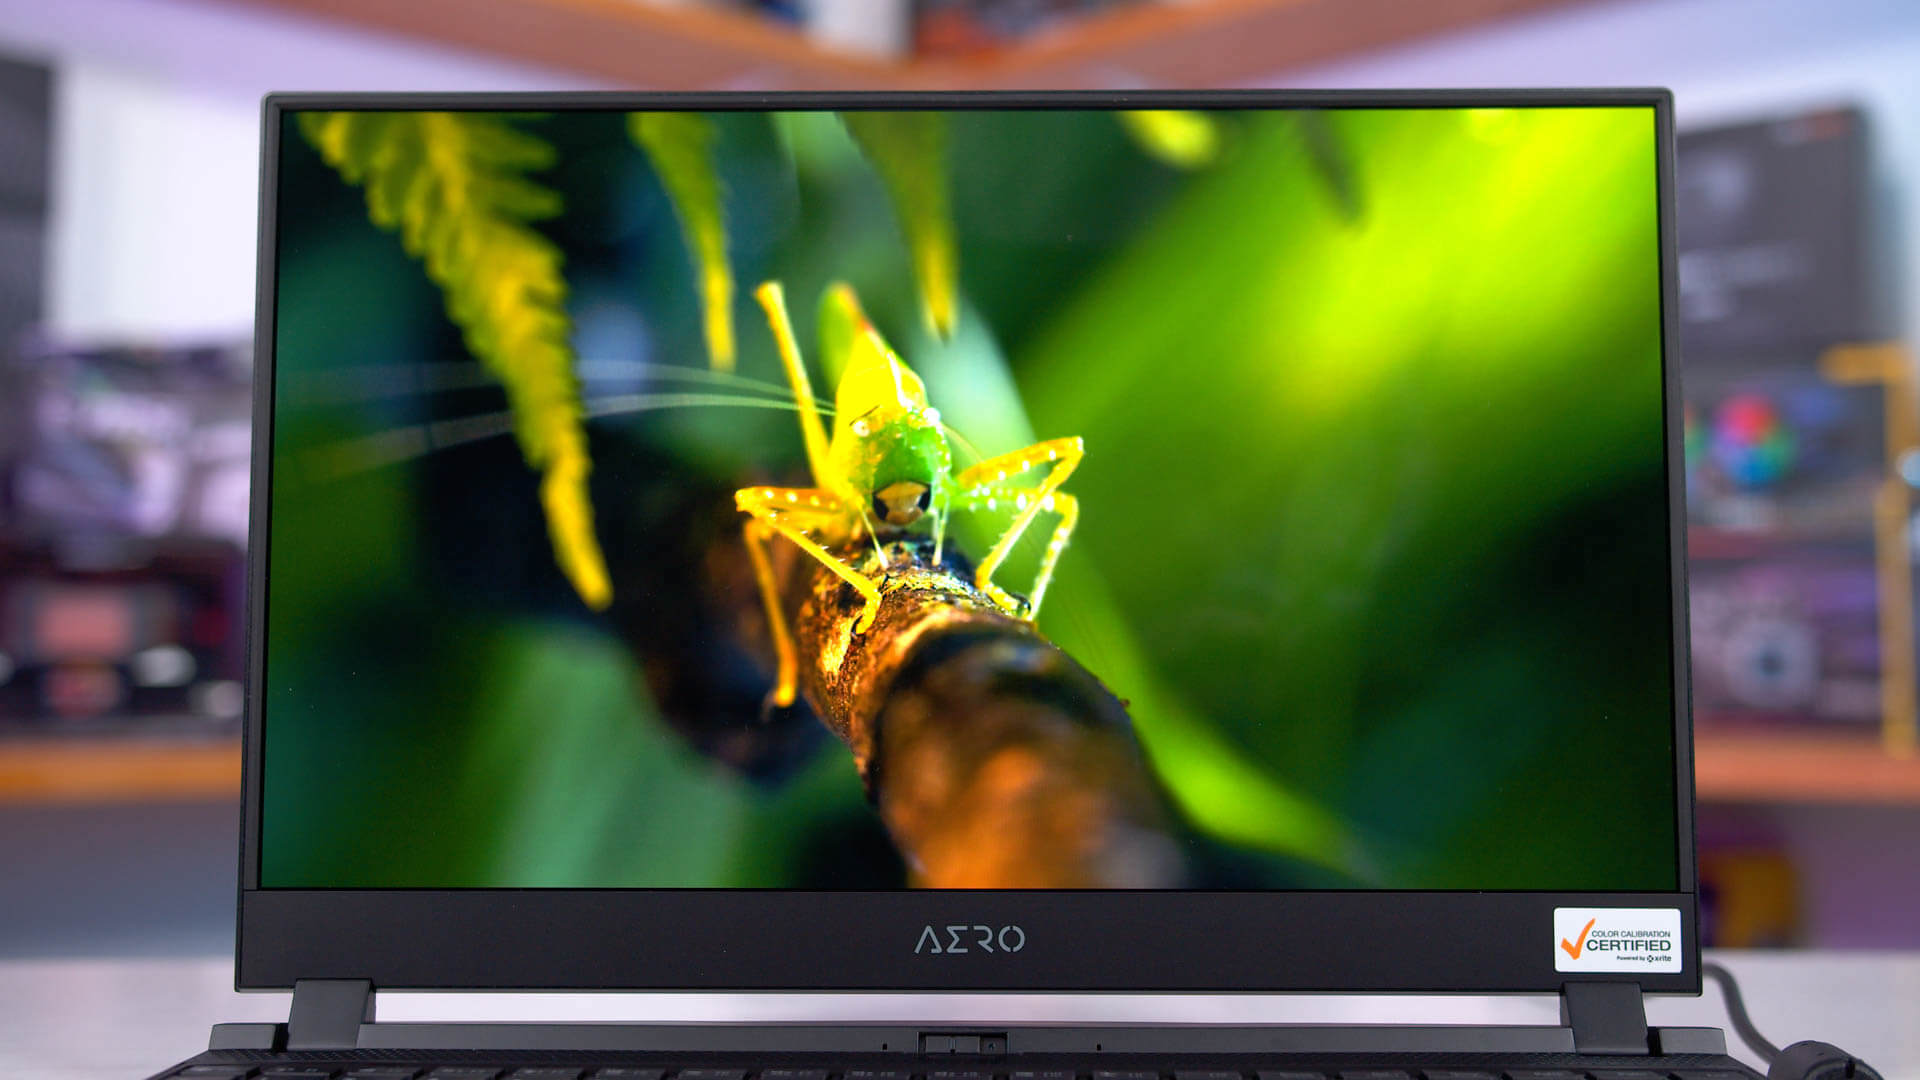 Testing an OLED Laptop Display: It's Pretty Amazing - TechSpot